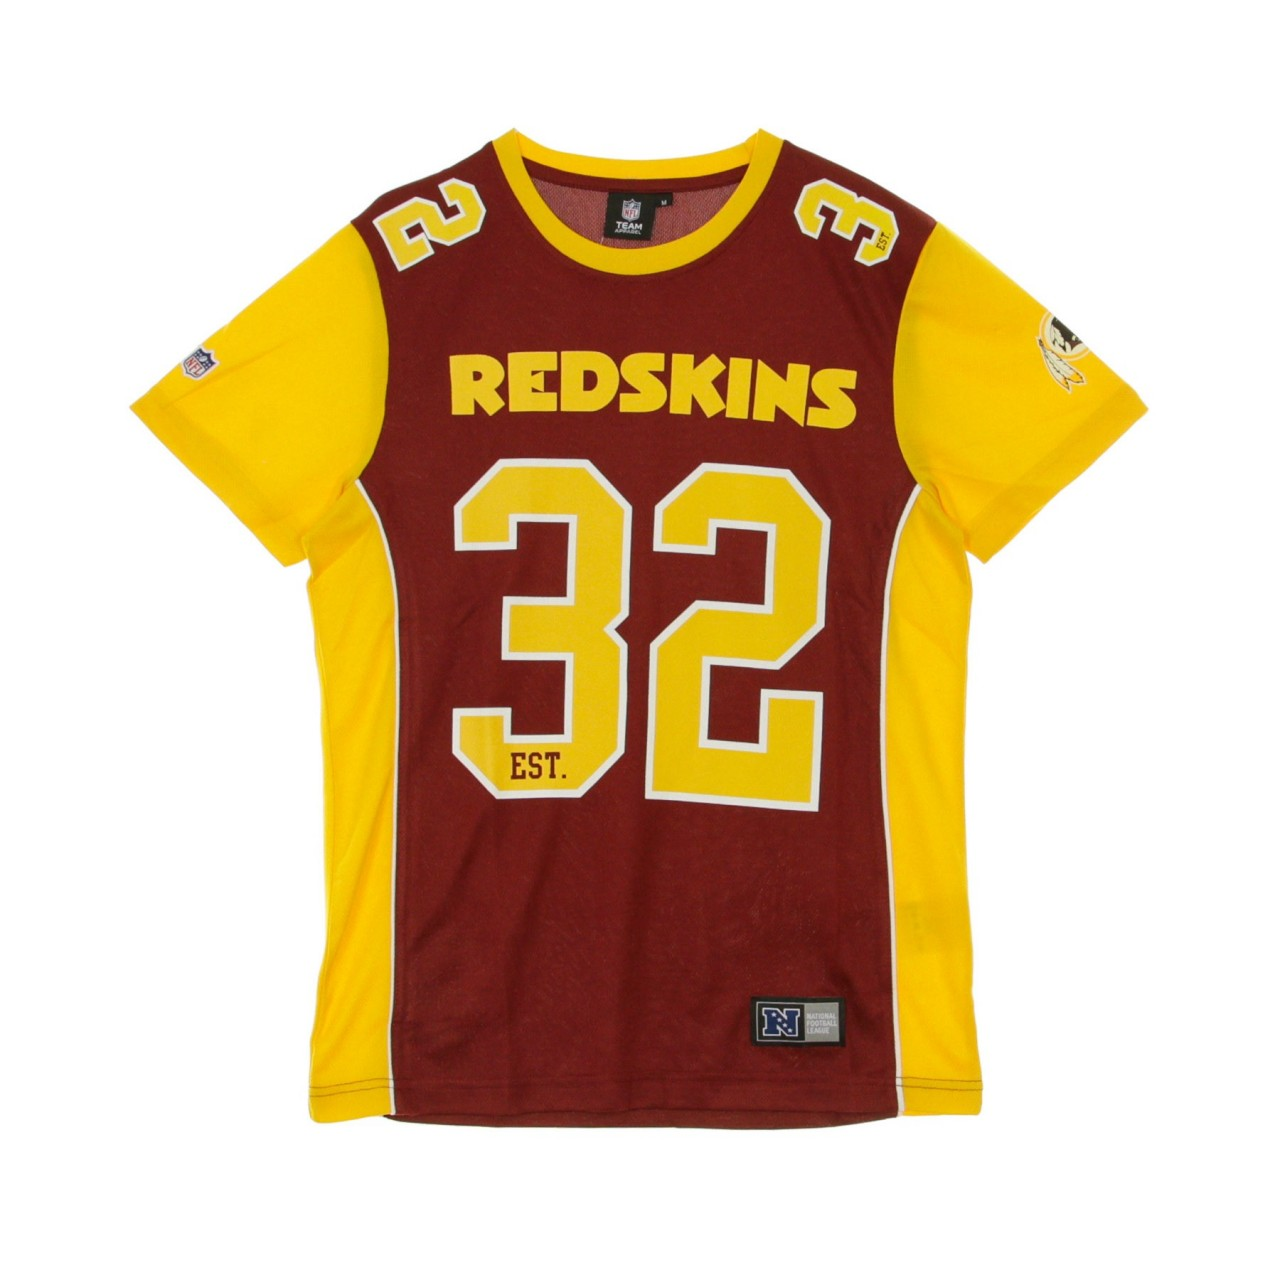 MAJESTIC NFL DENE POLY MESH TEE WASRED MWR-4655-WE